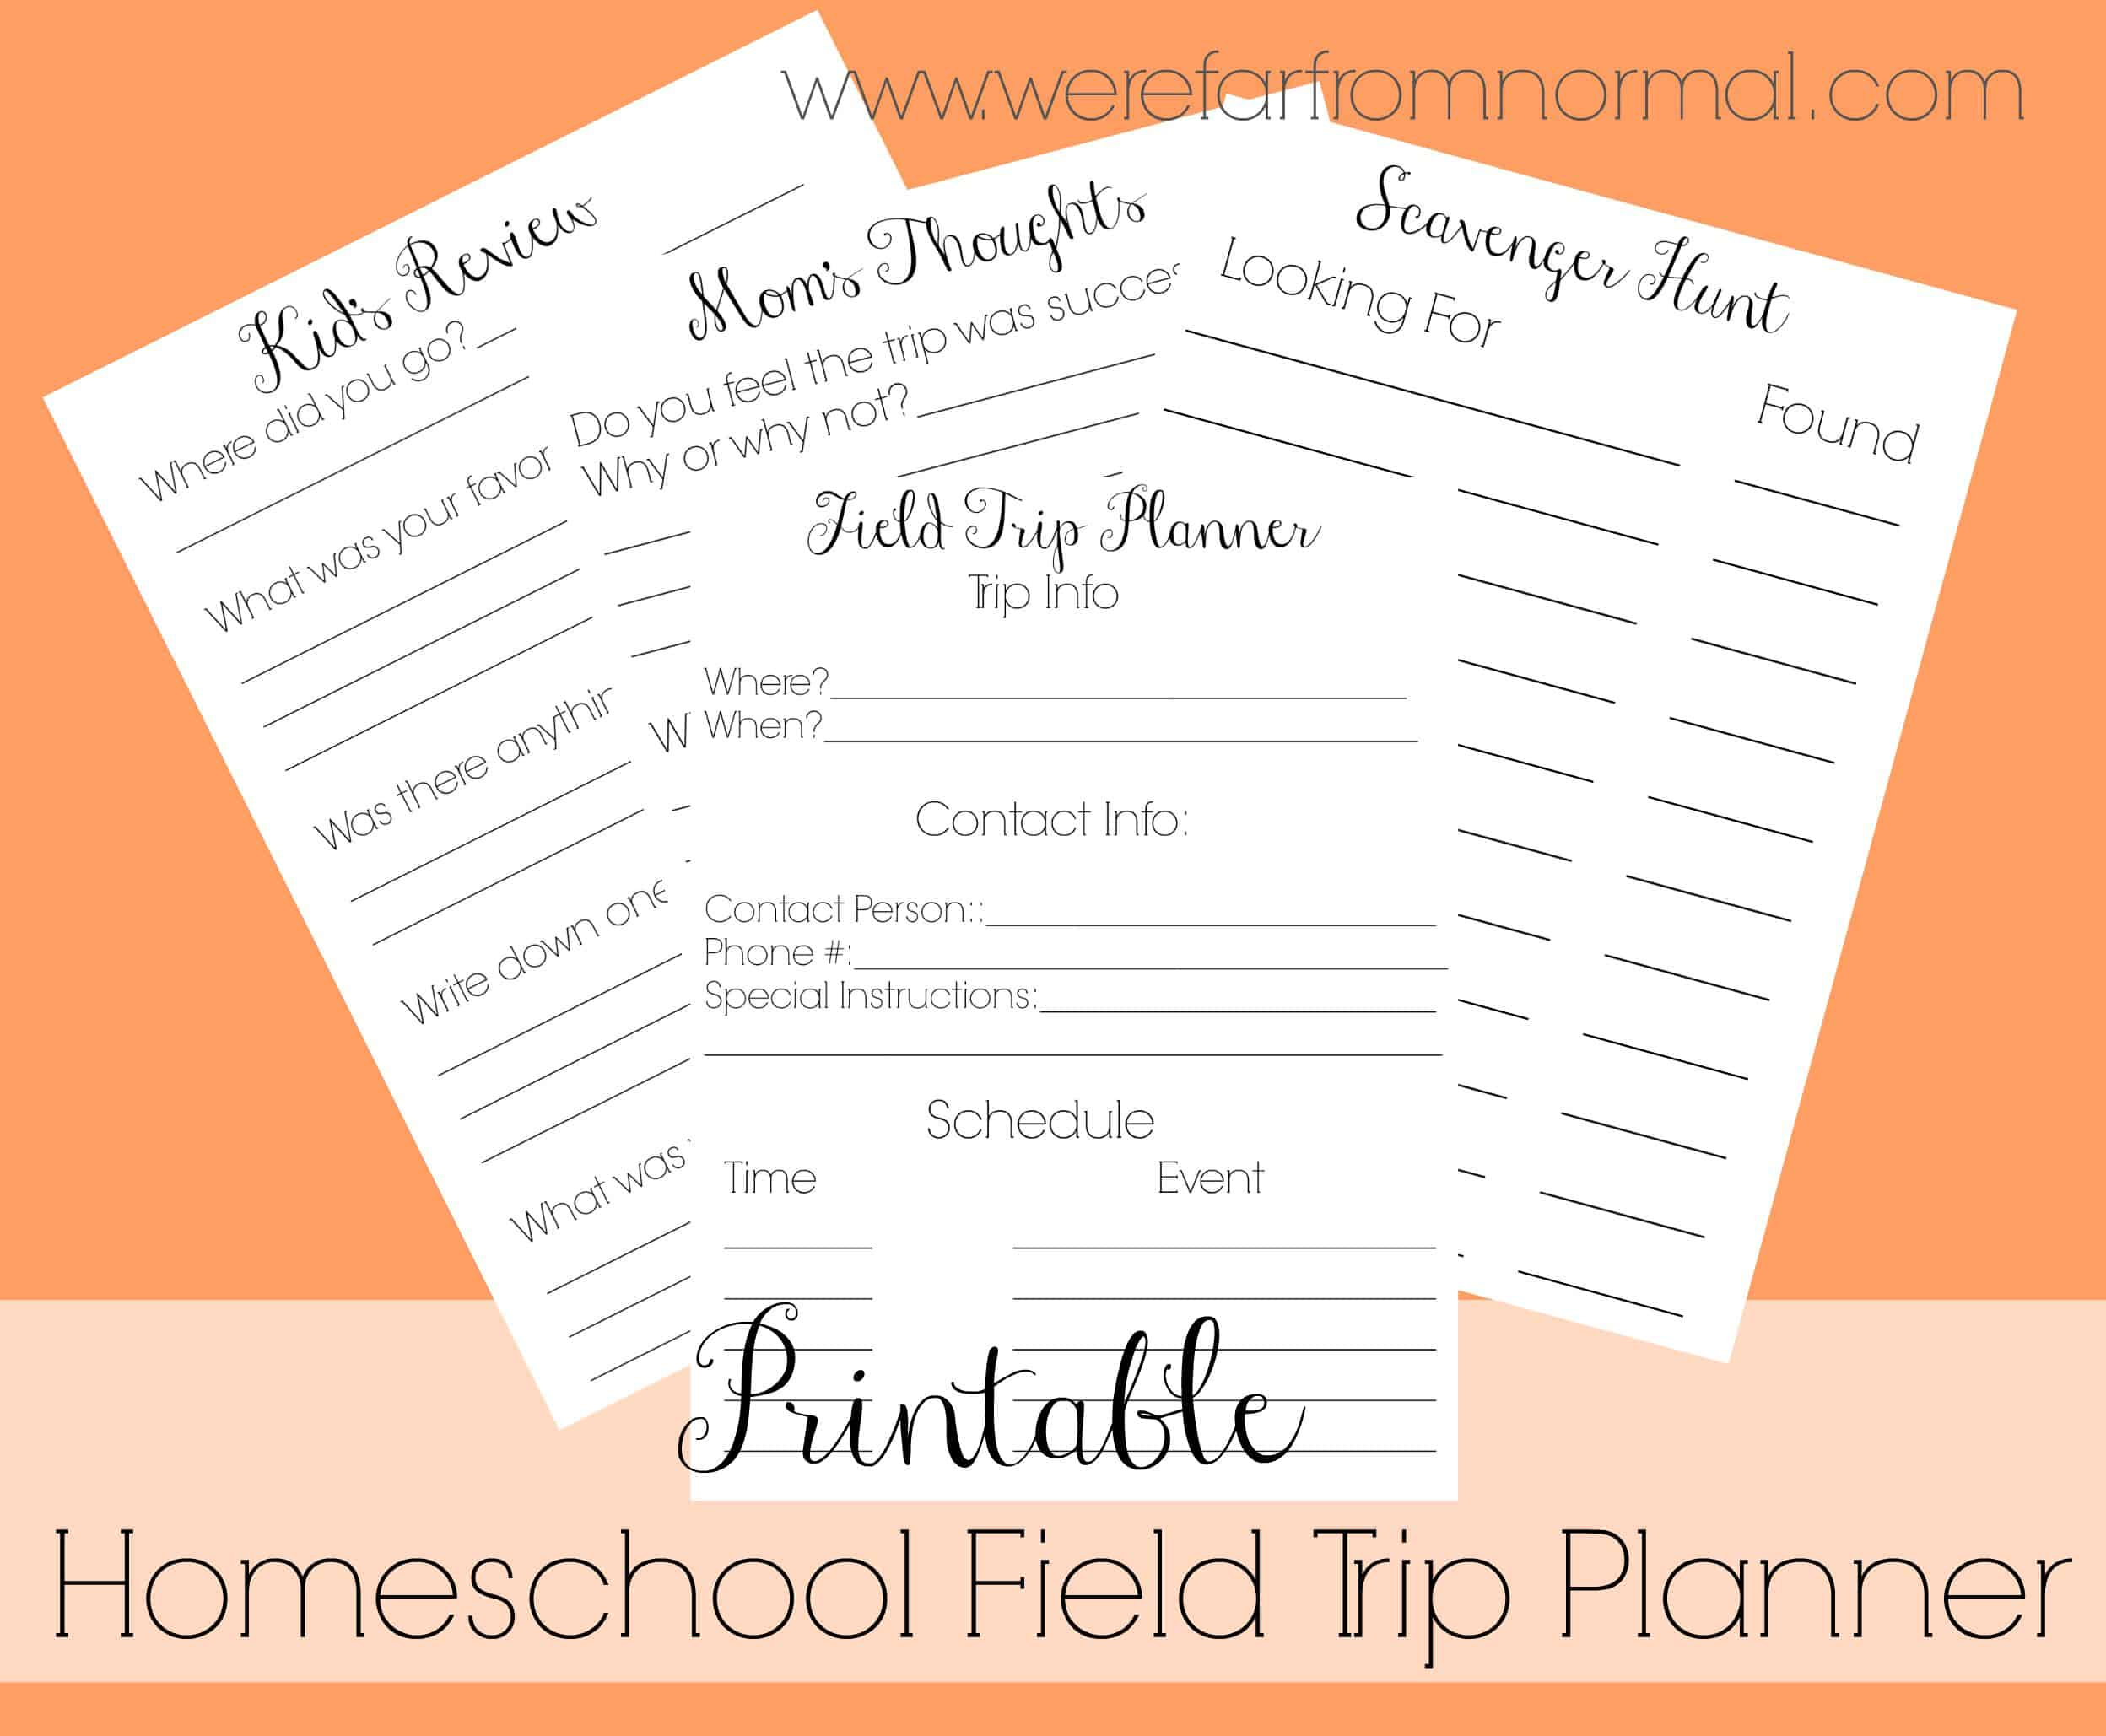 Free Printable Homeschool Field Trip Planner Far From Normal